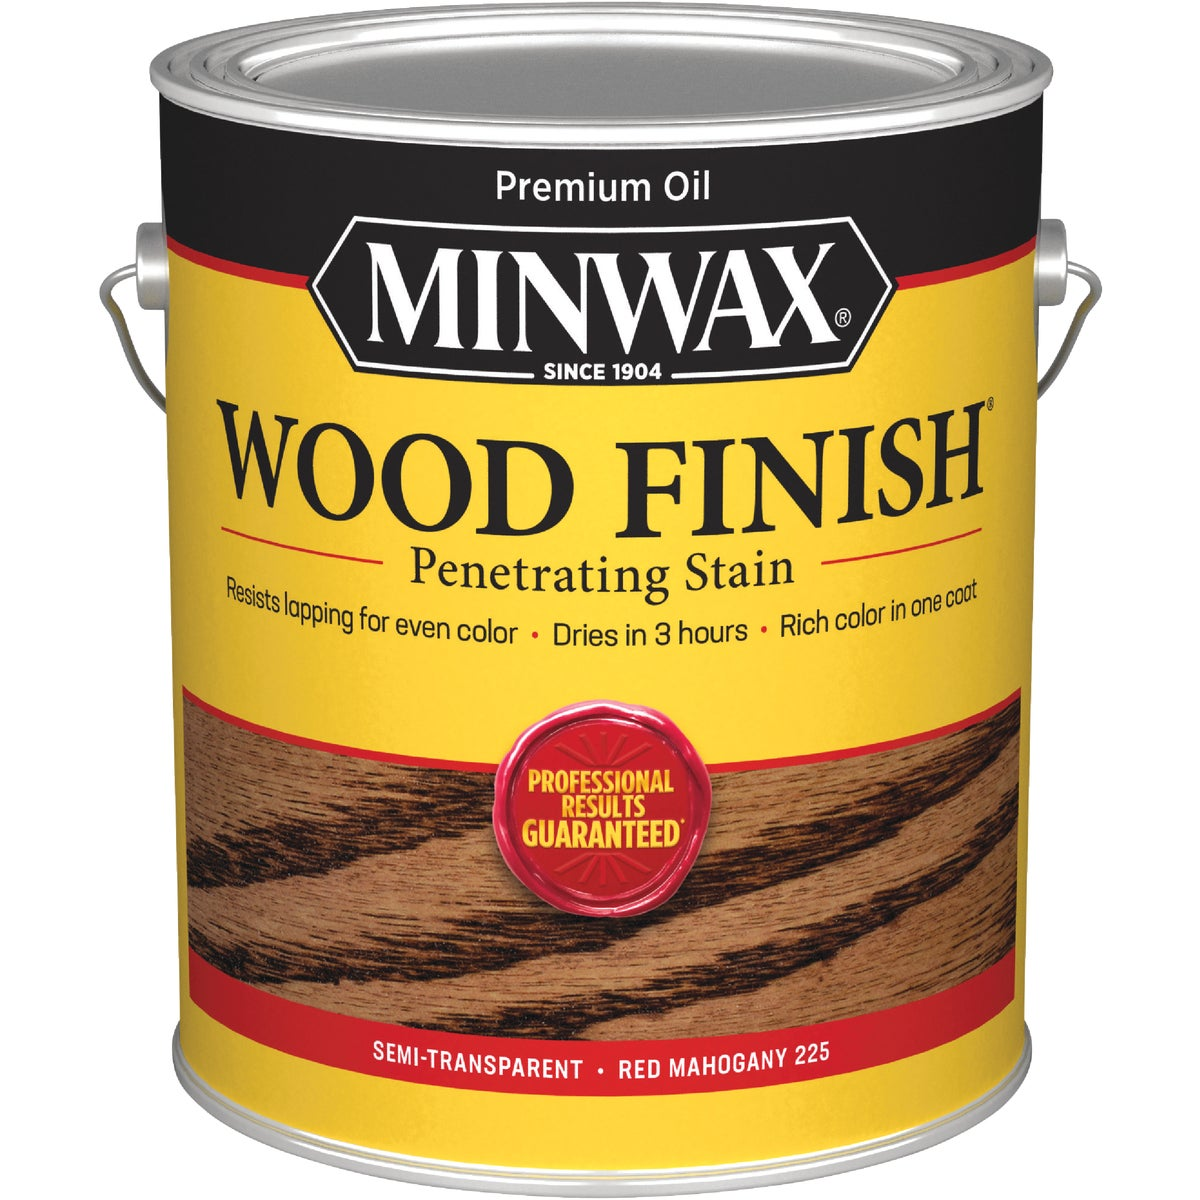 VOC RED MAHOG WOOD STAIN - 710770000 by Minwax Company